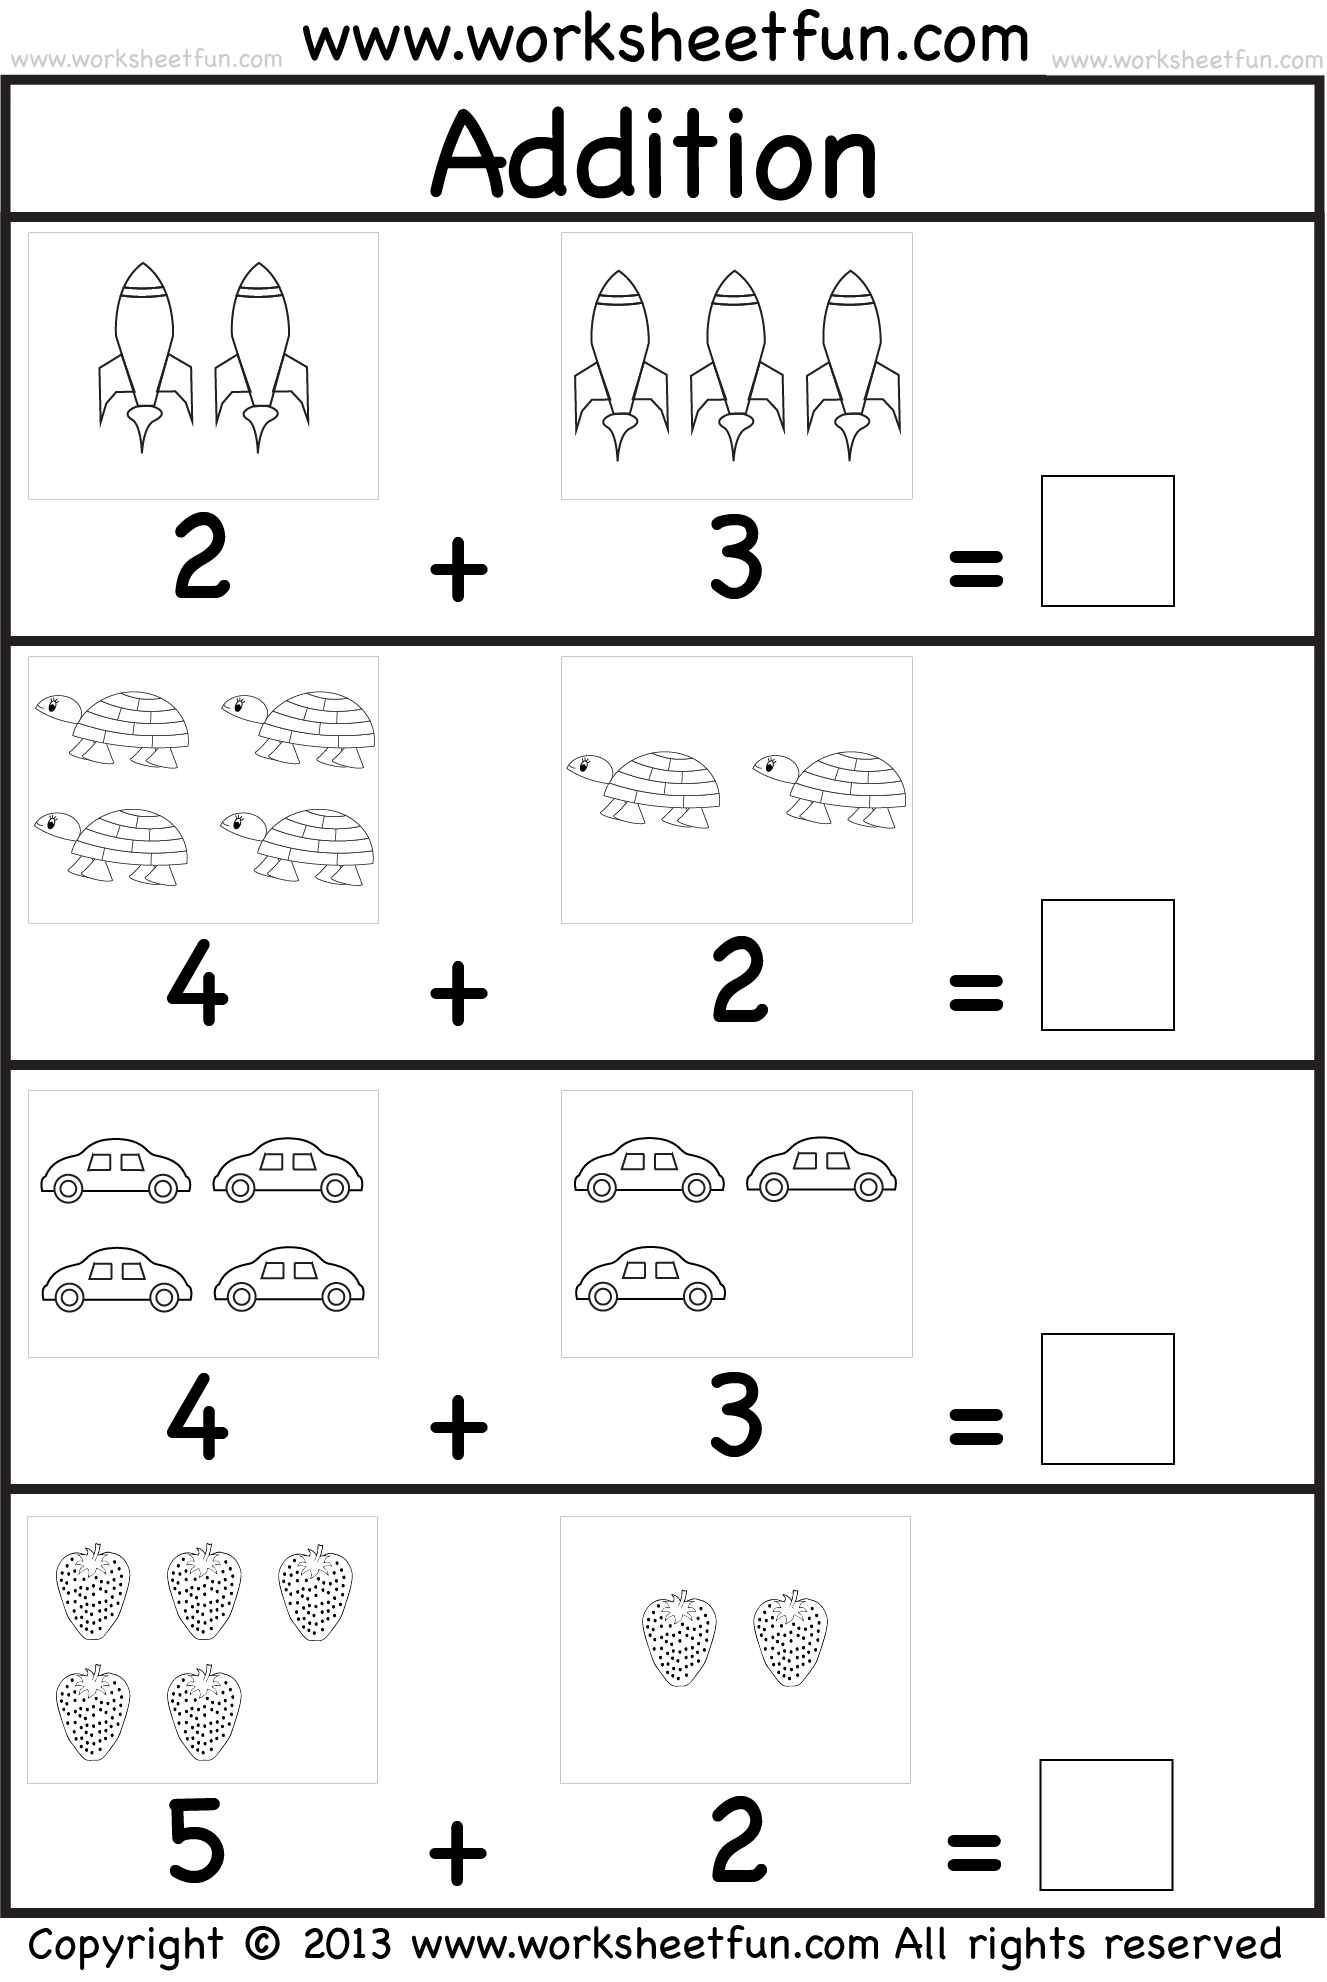 image relating to Free Printable Math Addition Worksheets for Kindergarten named addition worksheet. This web page consists of very good free of charge worksheets for